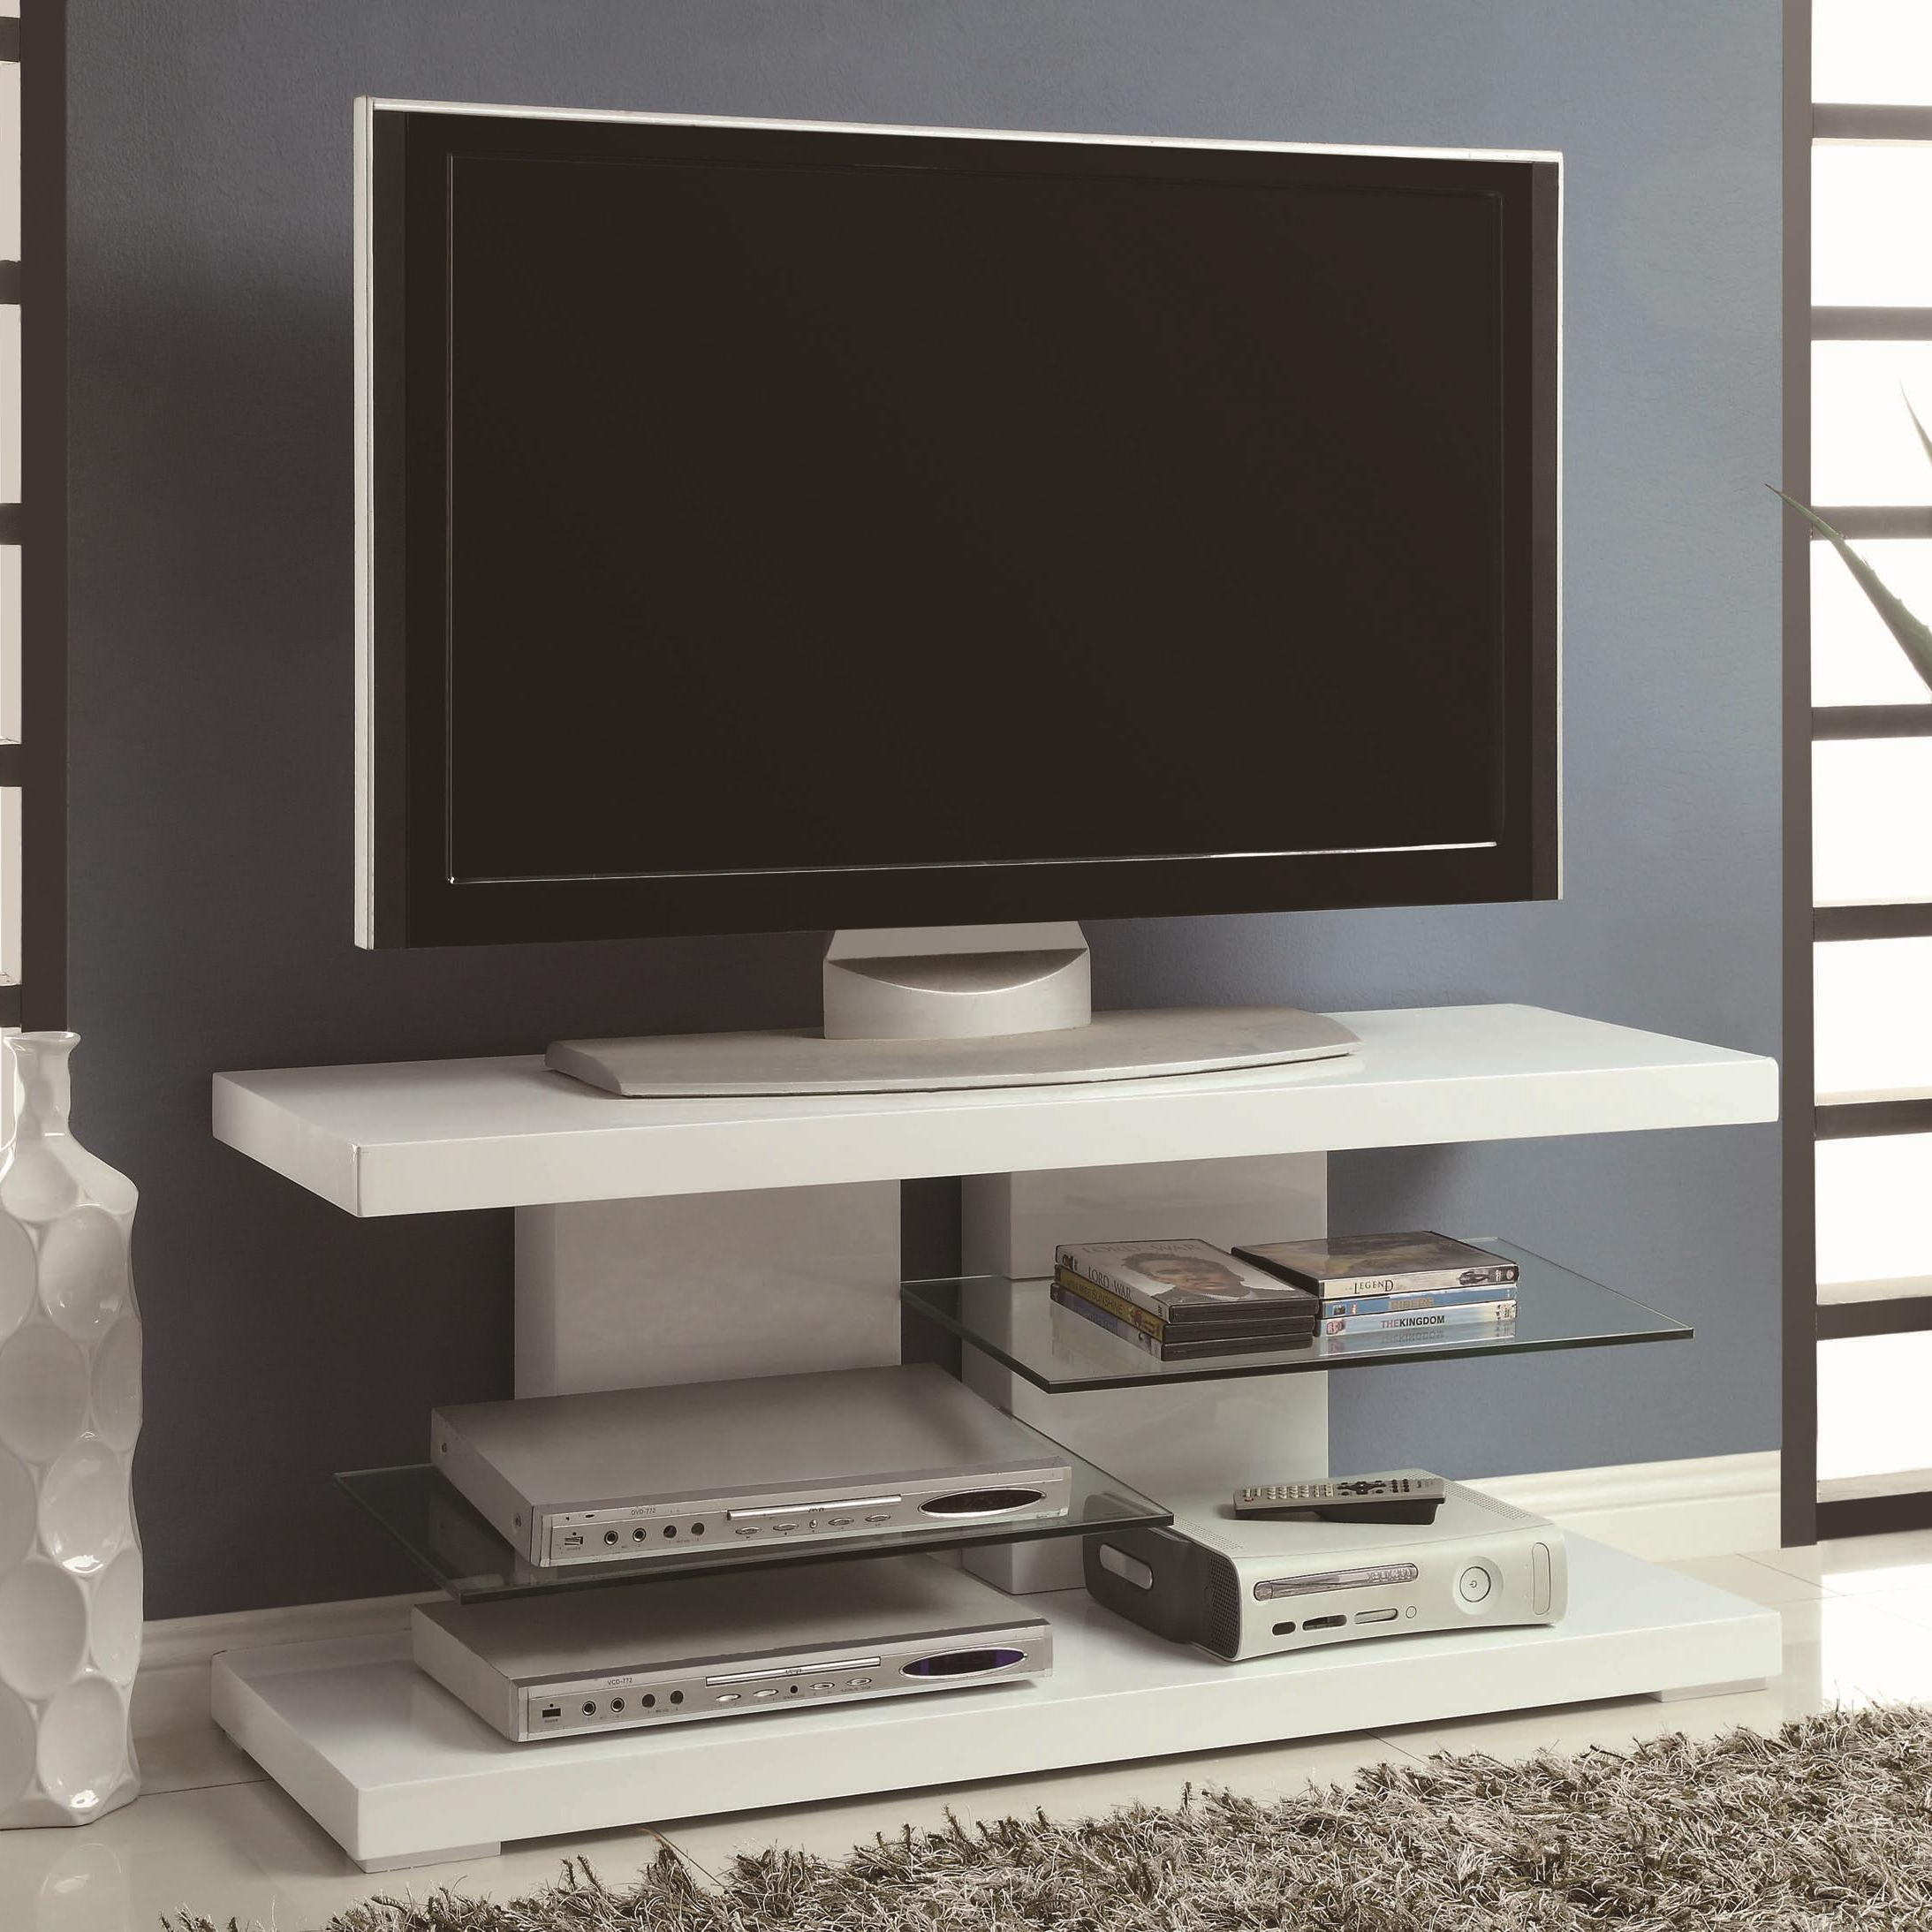 Glossy White Tv Stands With Regard To Fashionable Tv Stands Modern Tv Stand With Alternating Glass Shelves (View 6 of 20)